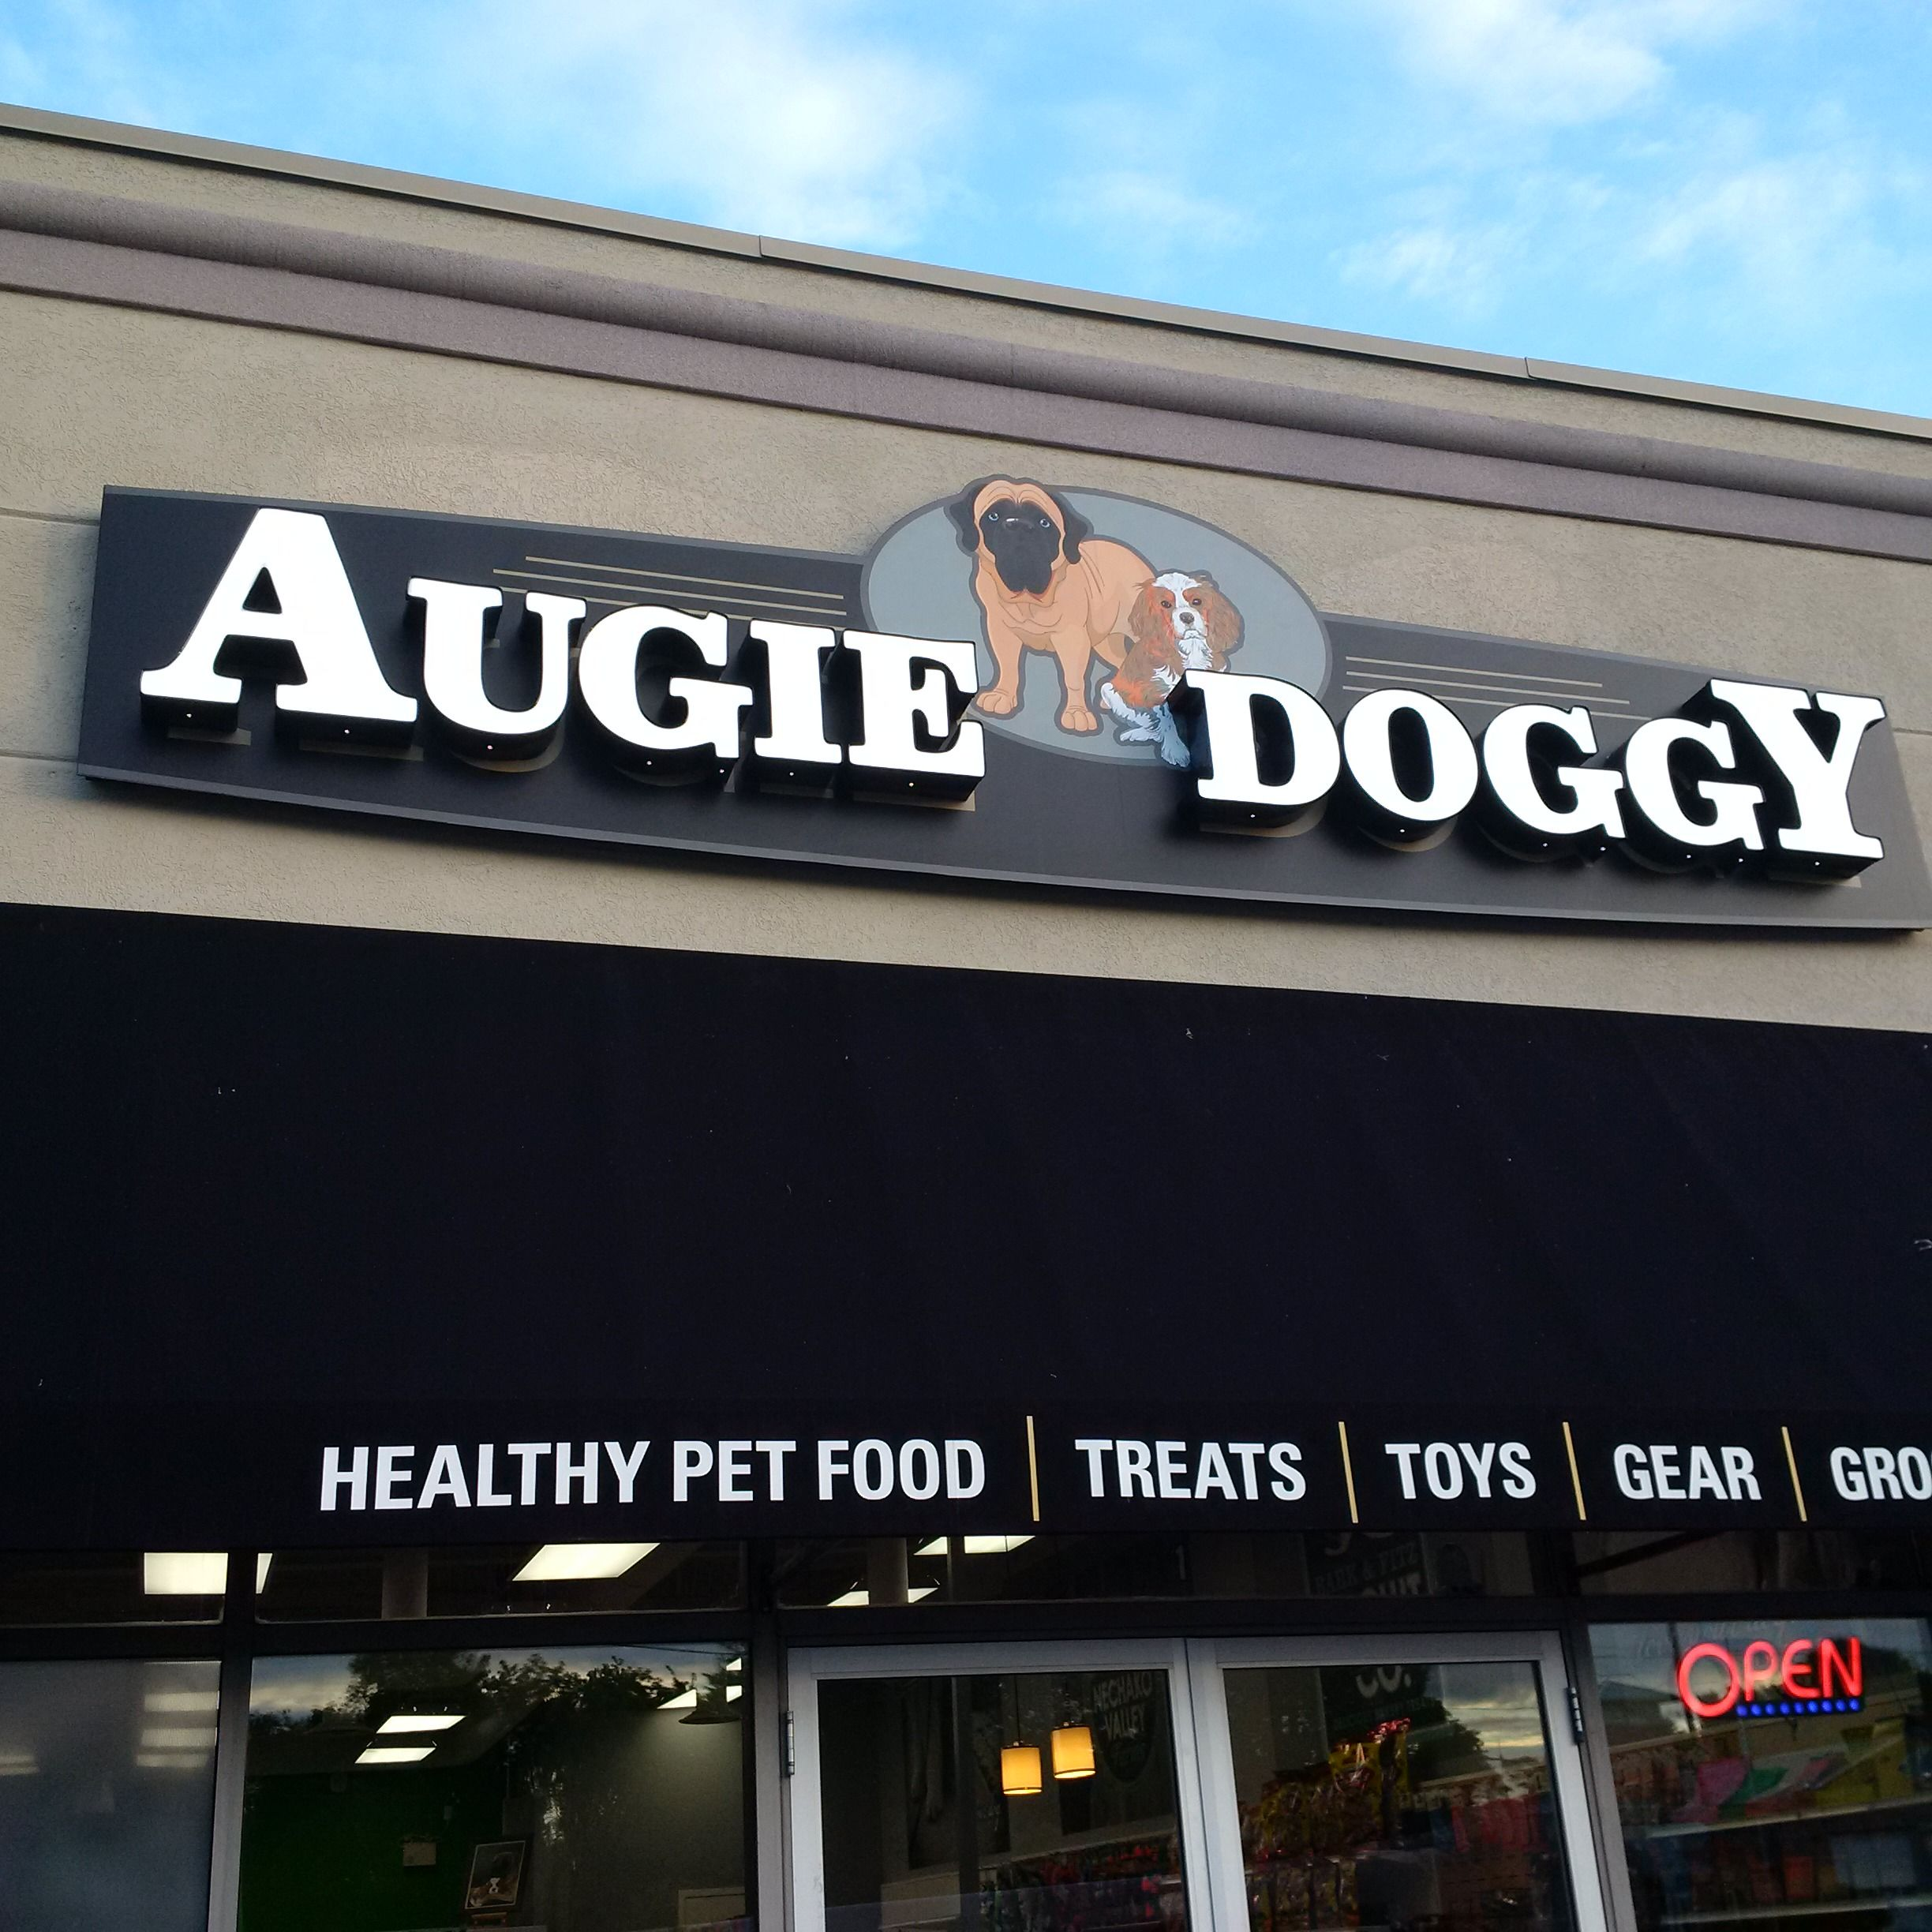 Auggy Doggy Whitby Channel Letters and Storefront signage